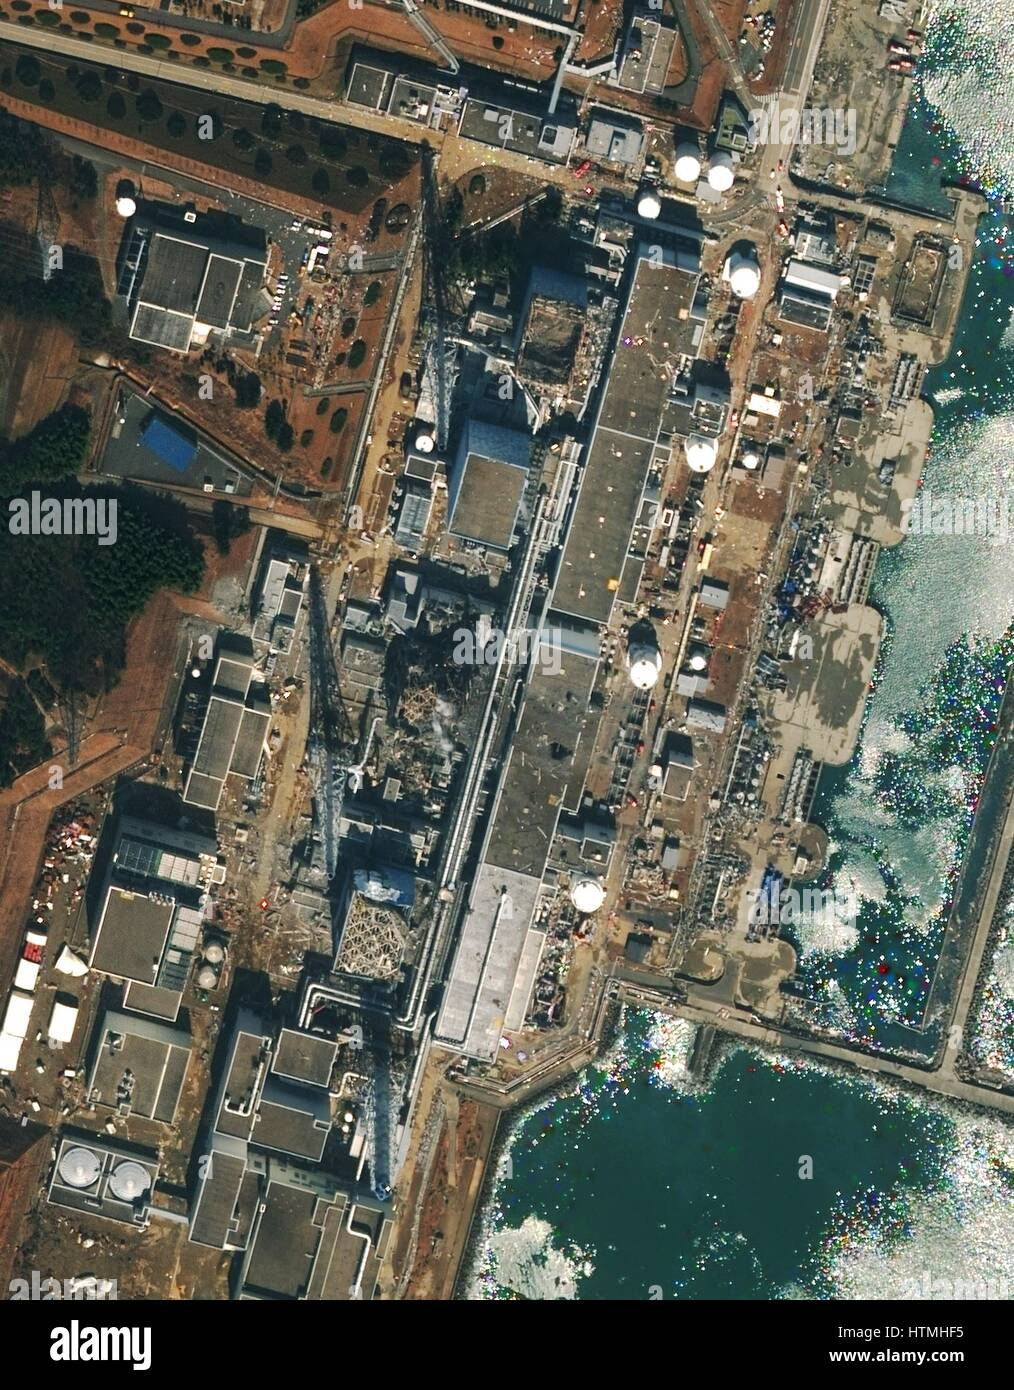 Fukushima Daiichi reactor in North eastern Japan 2011 Satellite view of earthquake damage to the reactors march17th - Stock Image